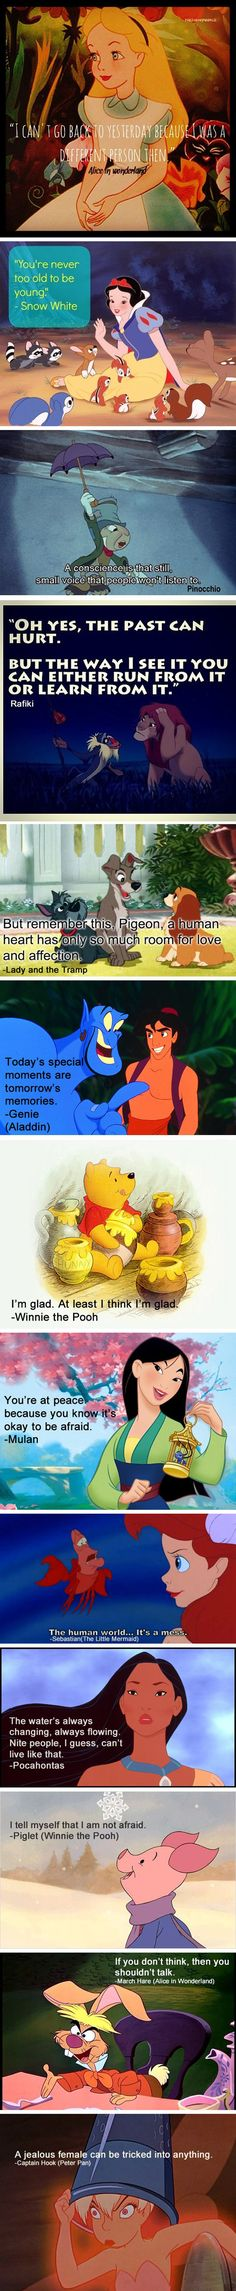 Wise words from Disney.